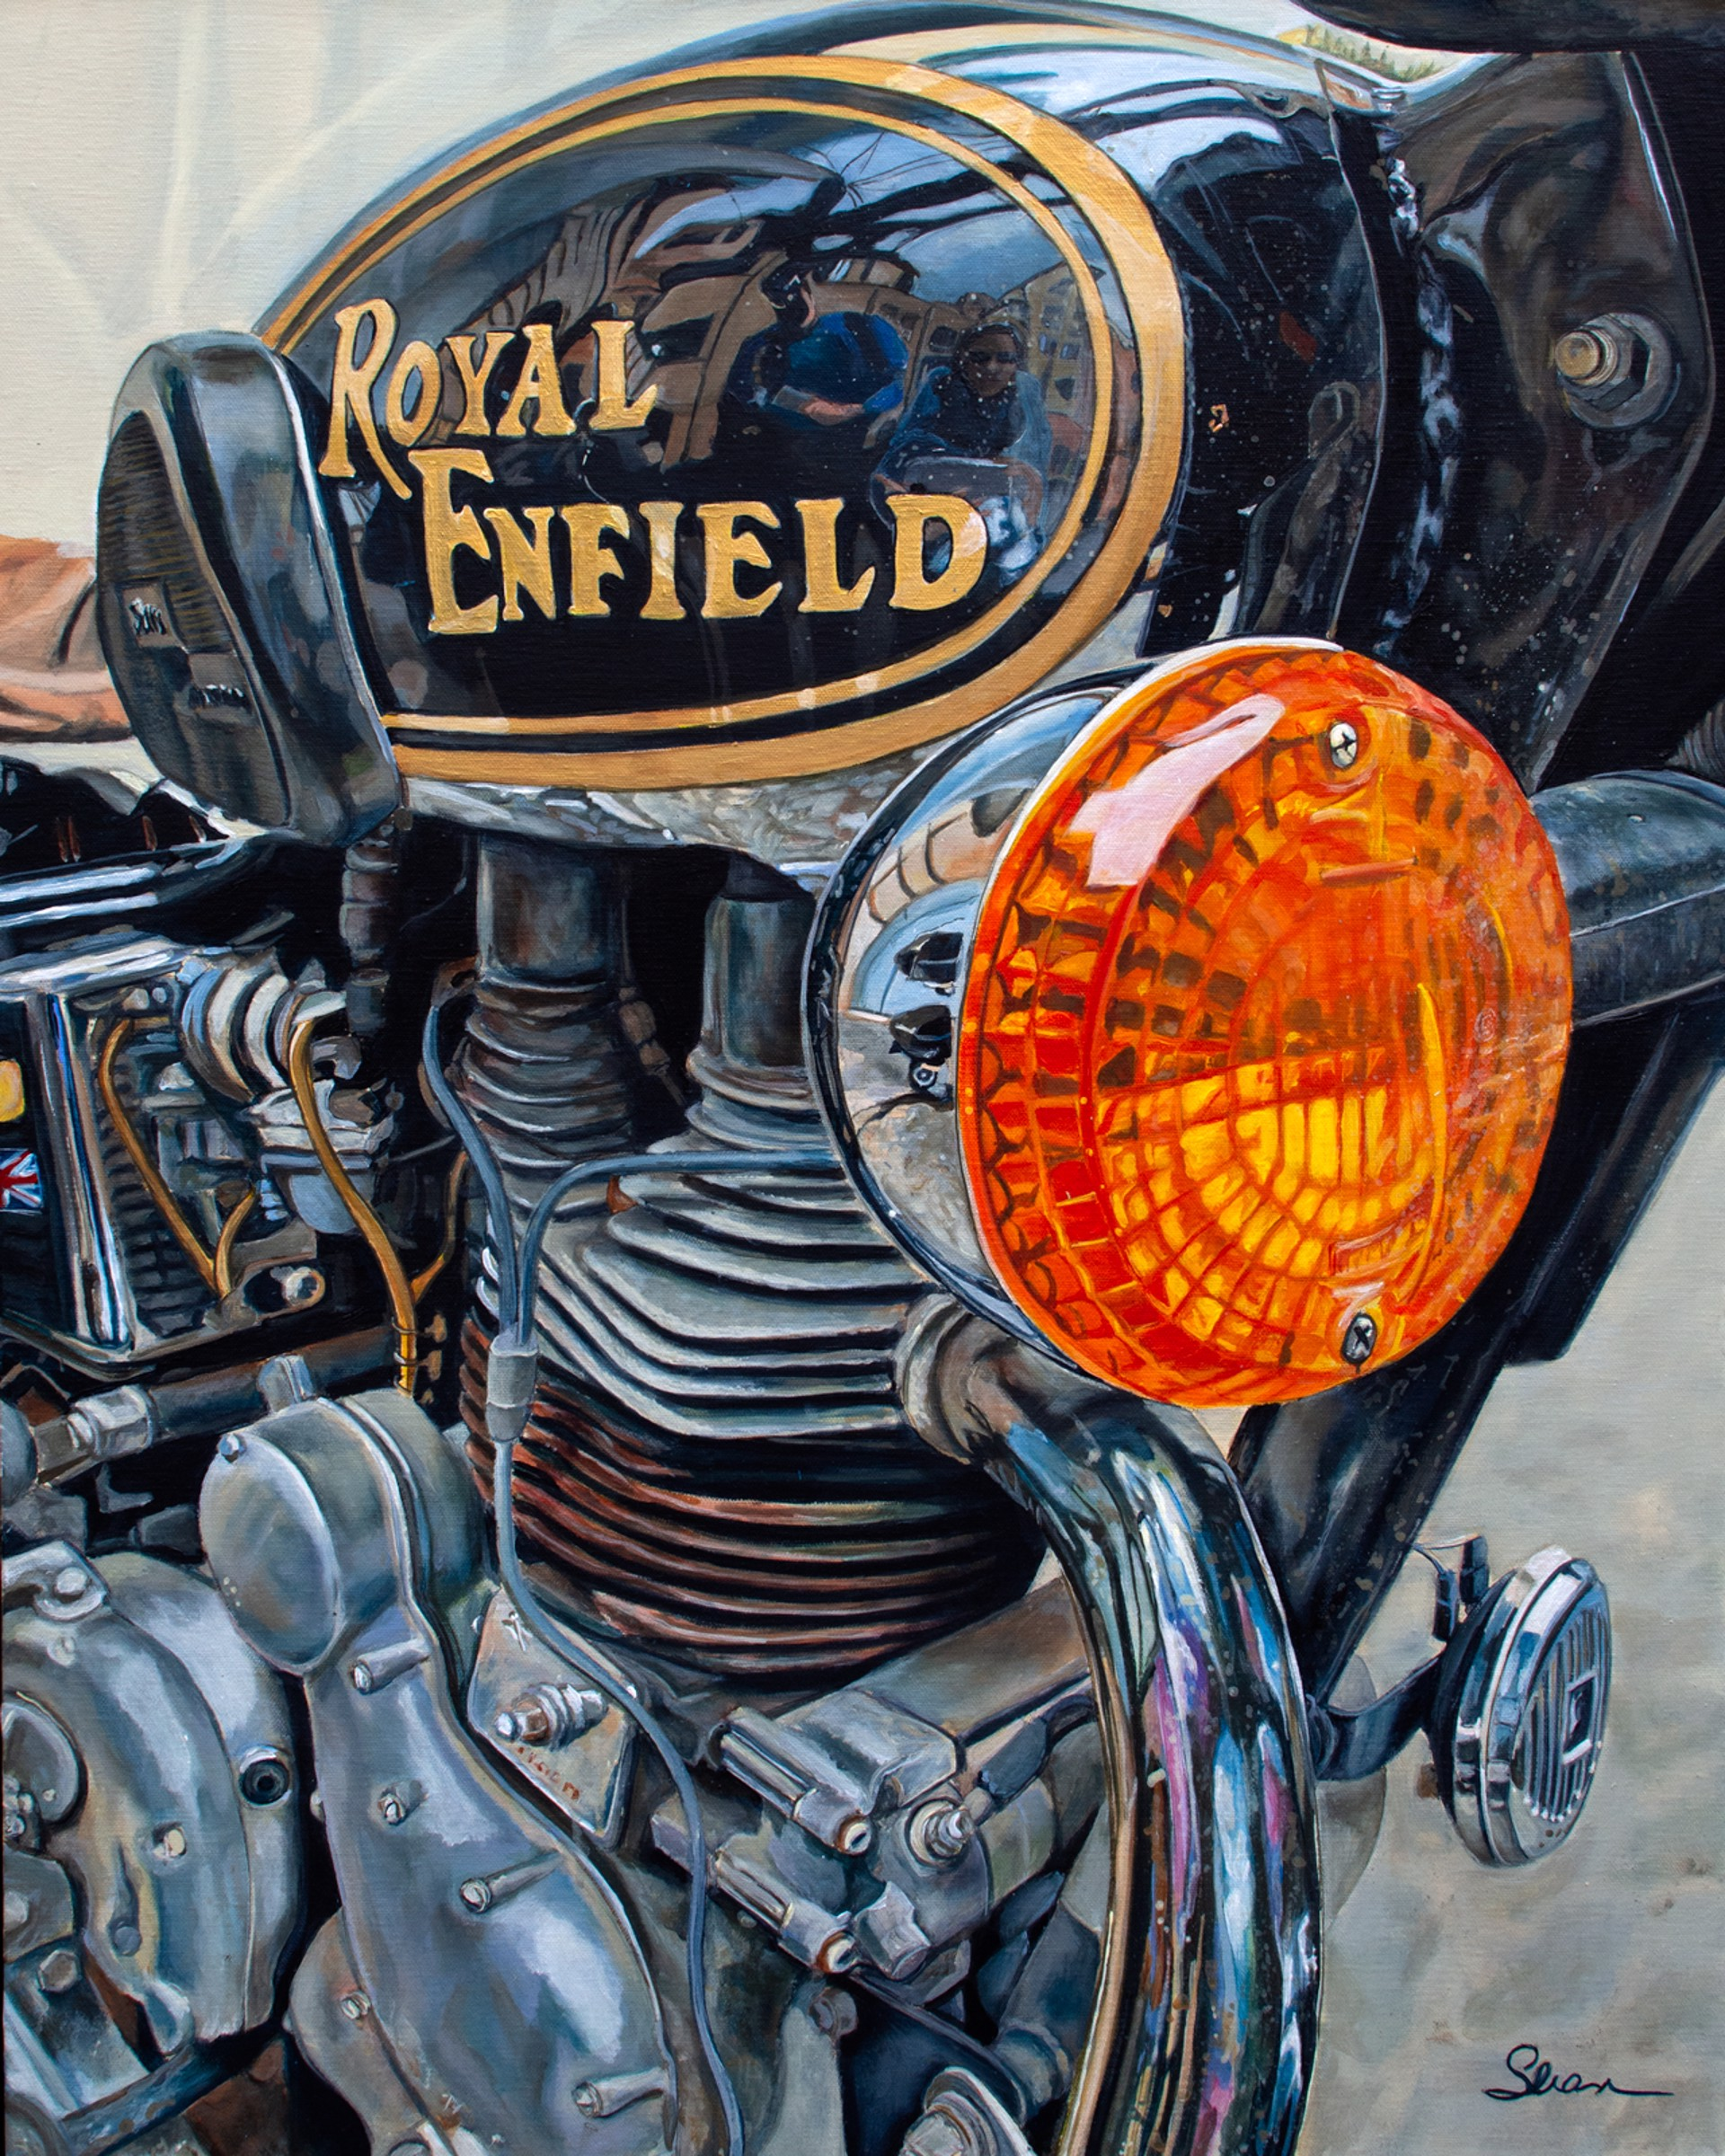 Sully's Royal Enfield by Shan Fannin